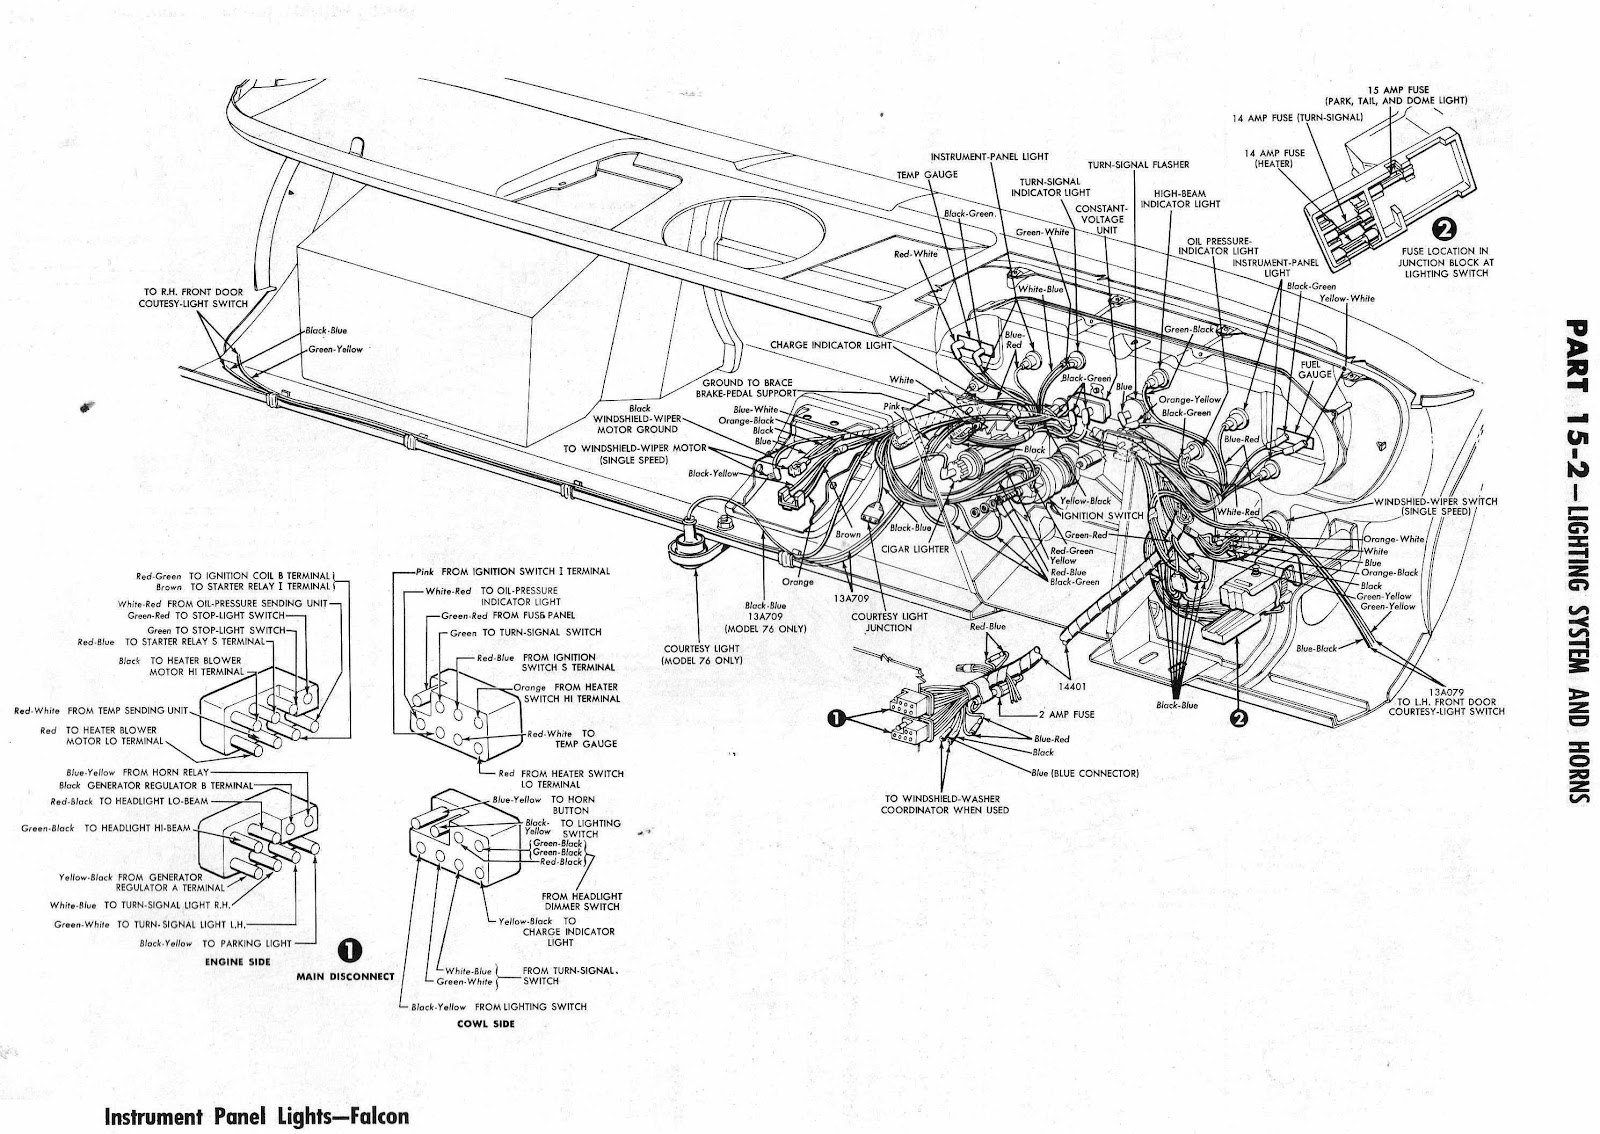 Ford+Falcon+1964+Lighting+System+and+Horns+Wiring+Diagram au falcon wiring diagram falcon guide \u2022 wiring diagrams j squared co  at reclaimingppi.co